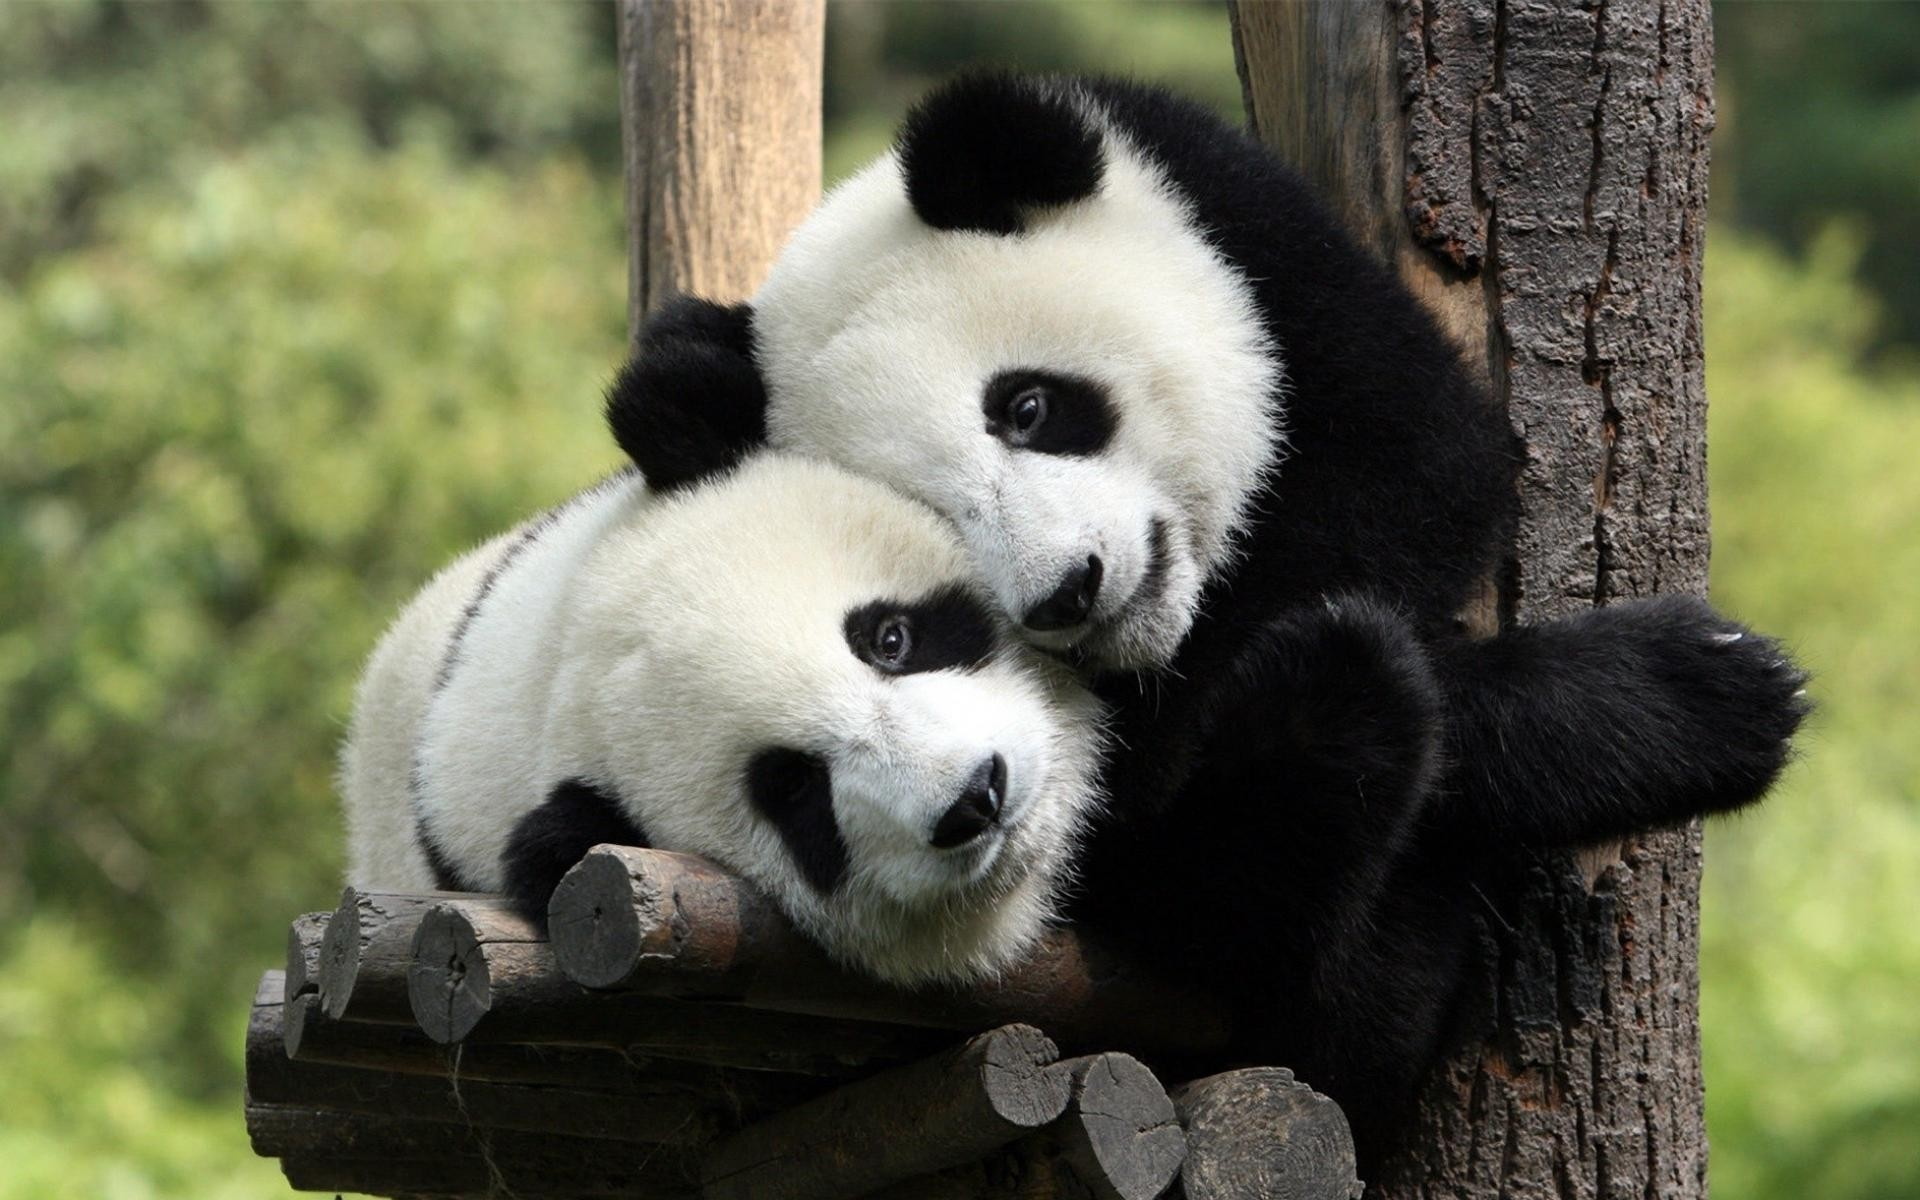 43493 download wallpaper Animals, Pandas screensavers and pictures for free